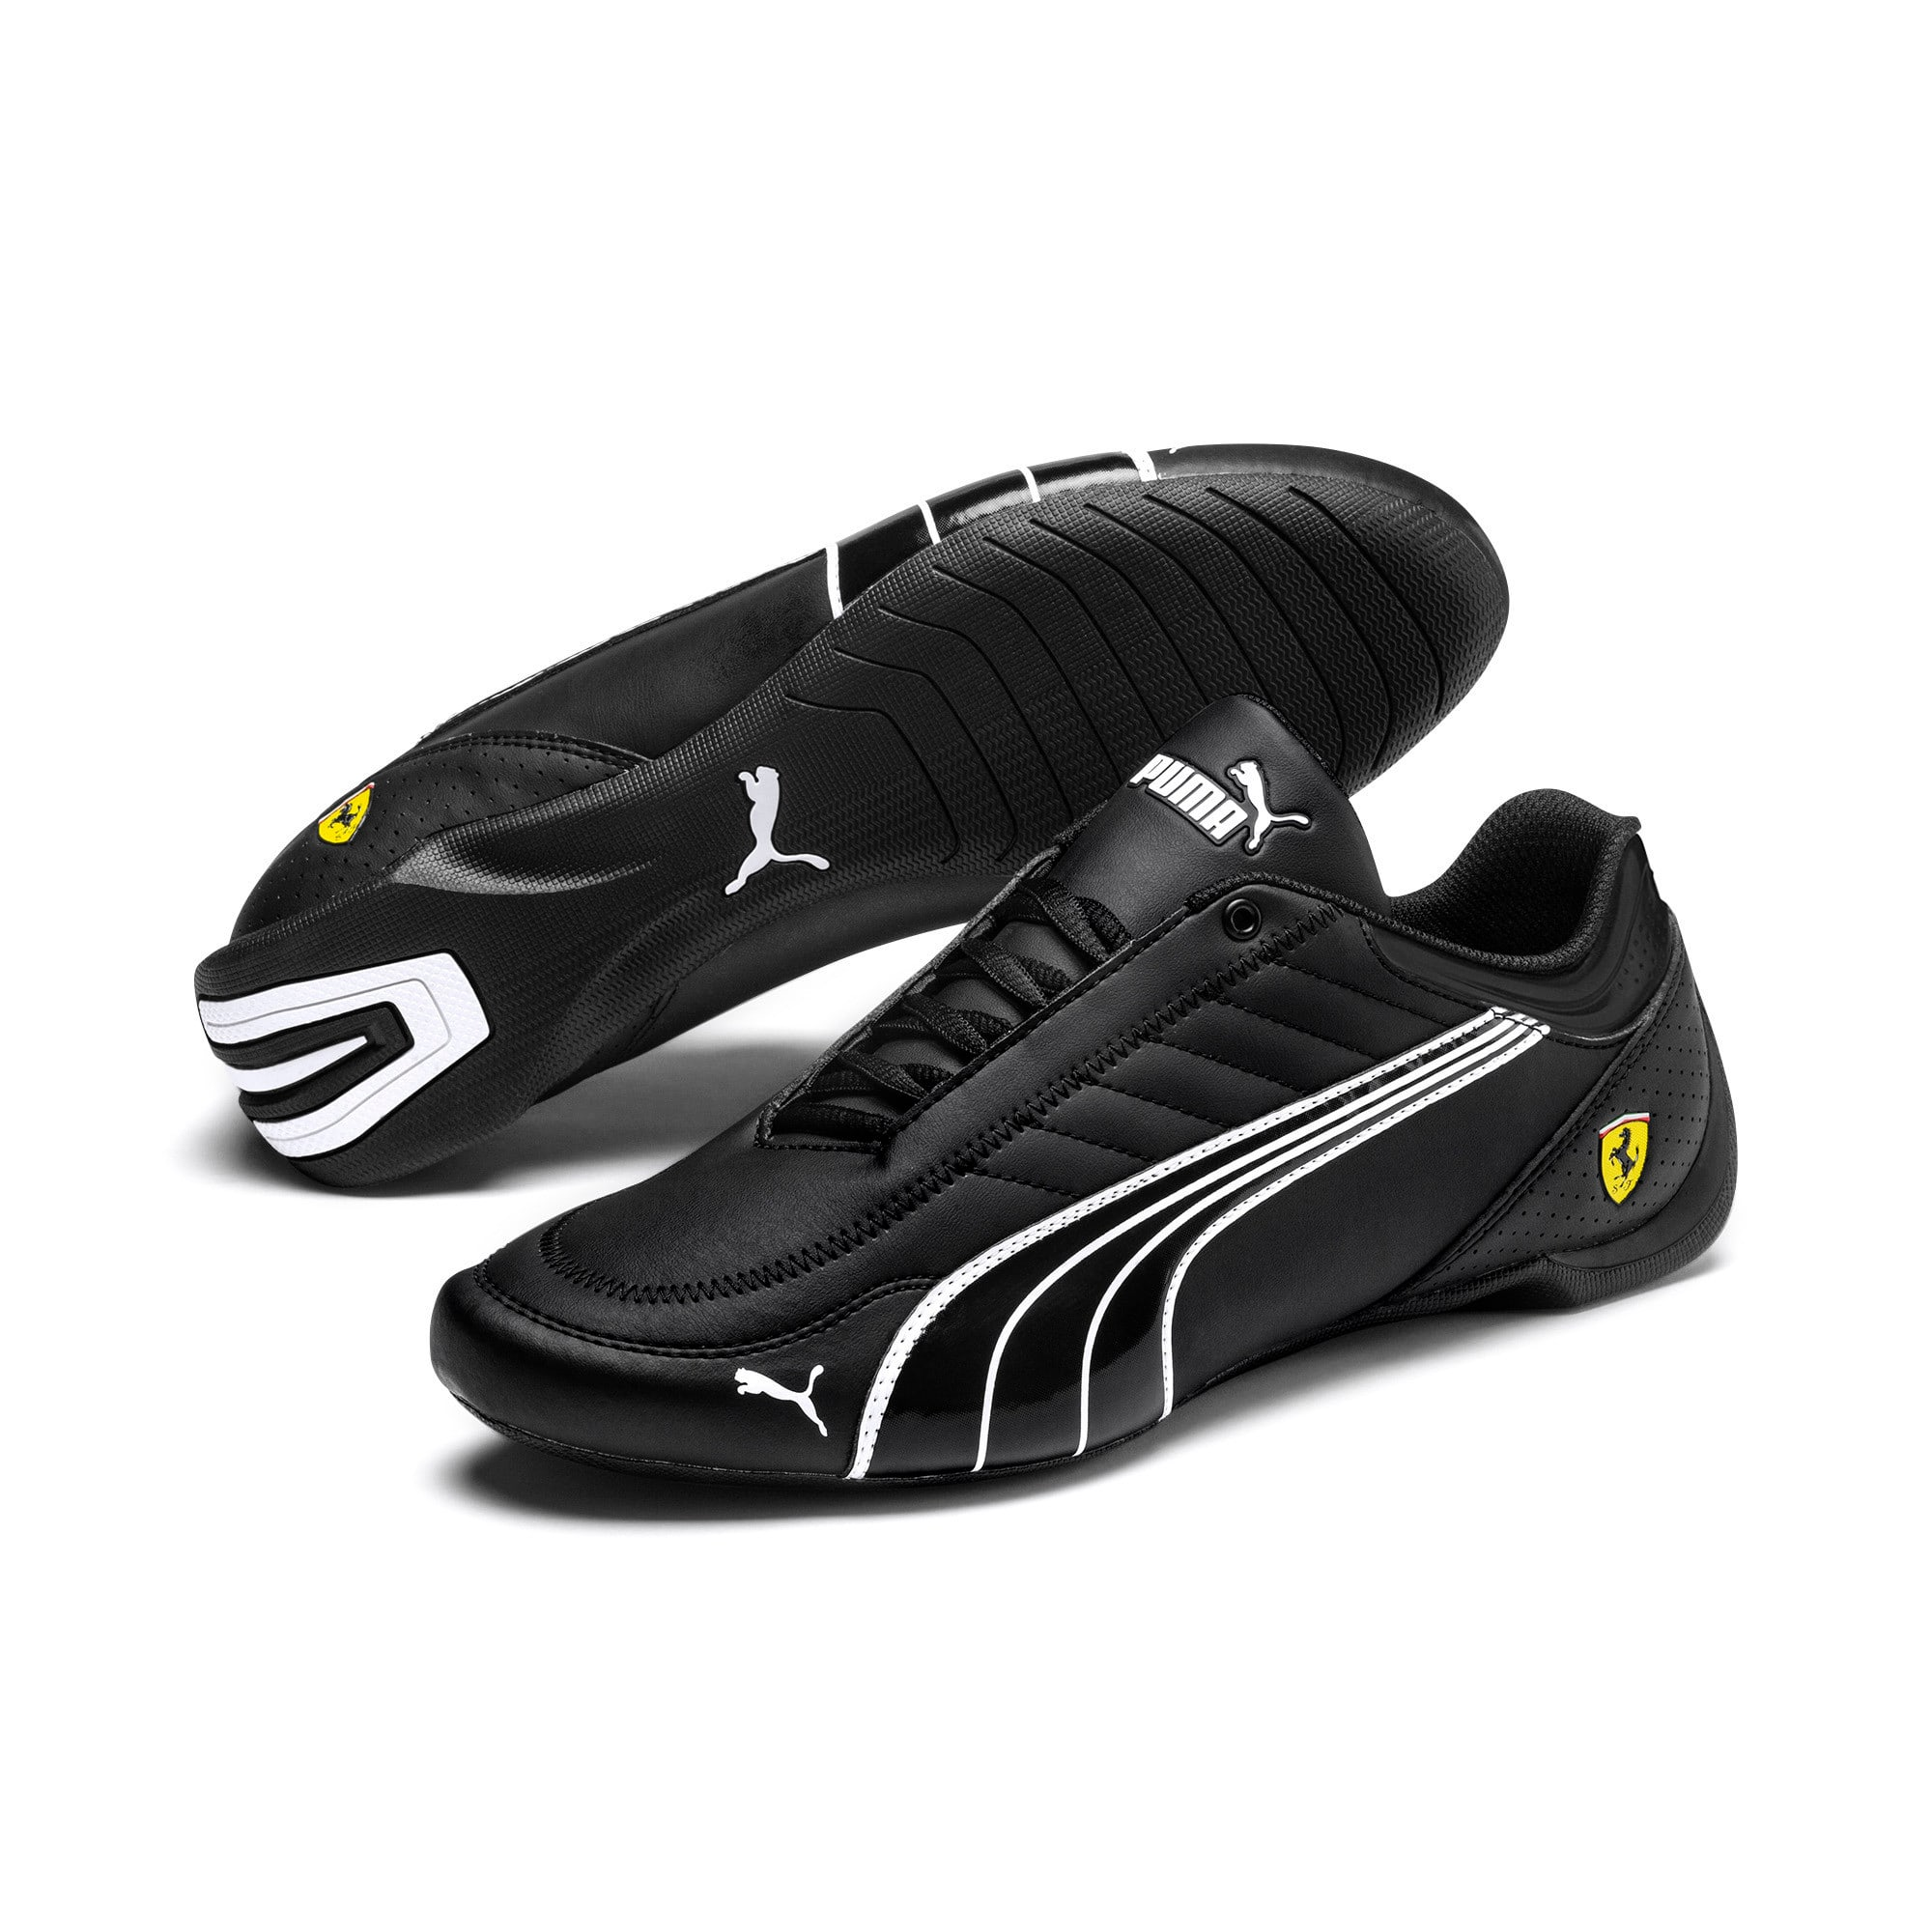 Thumbnail 3 of Basket Ferrari Future Kart Cat, Black-Puma White-Rosso Corsa, medium